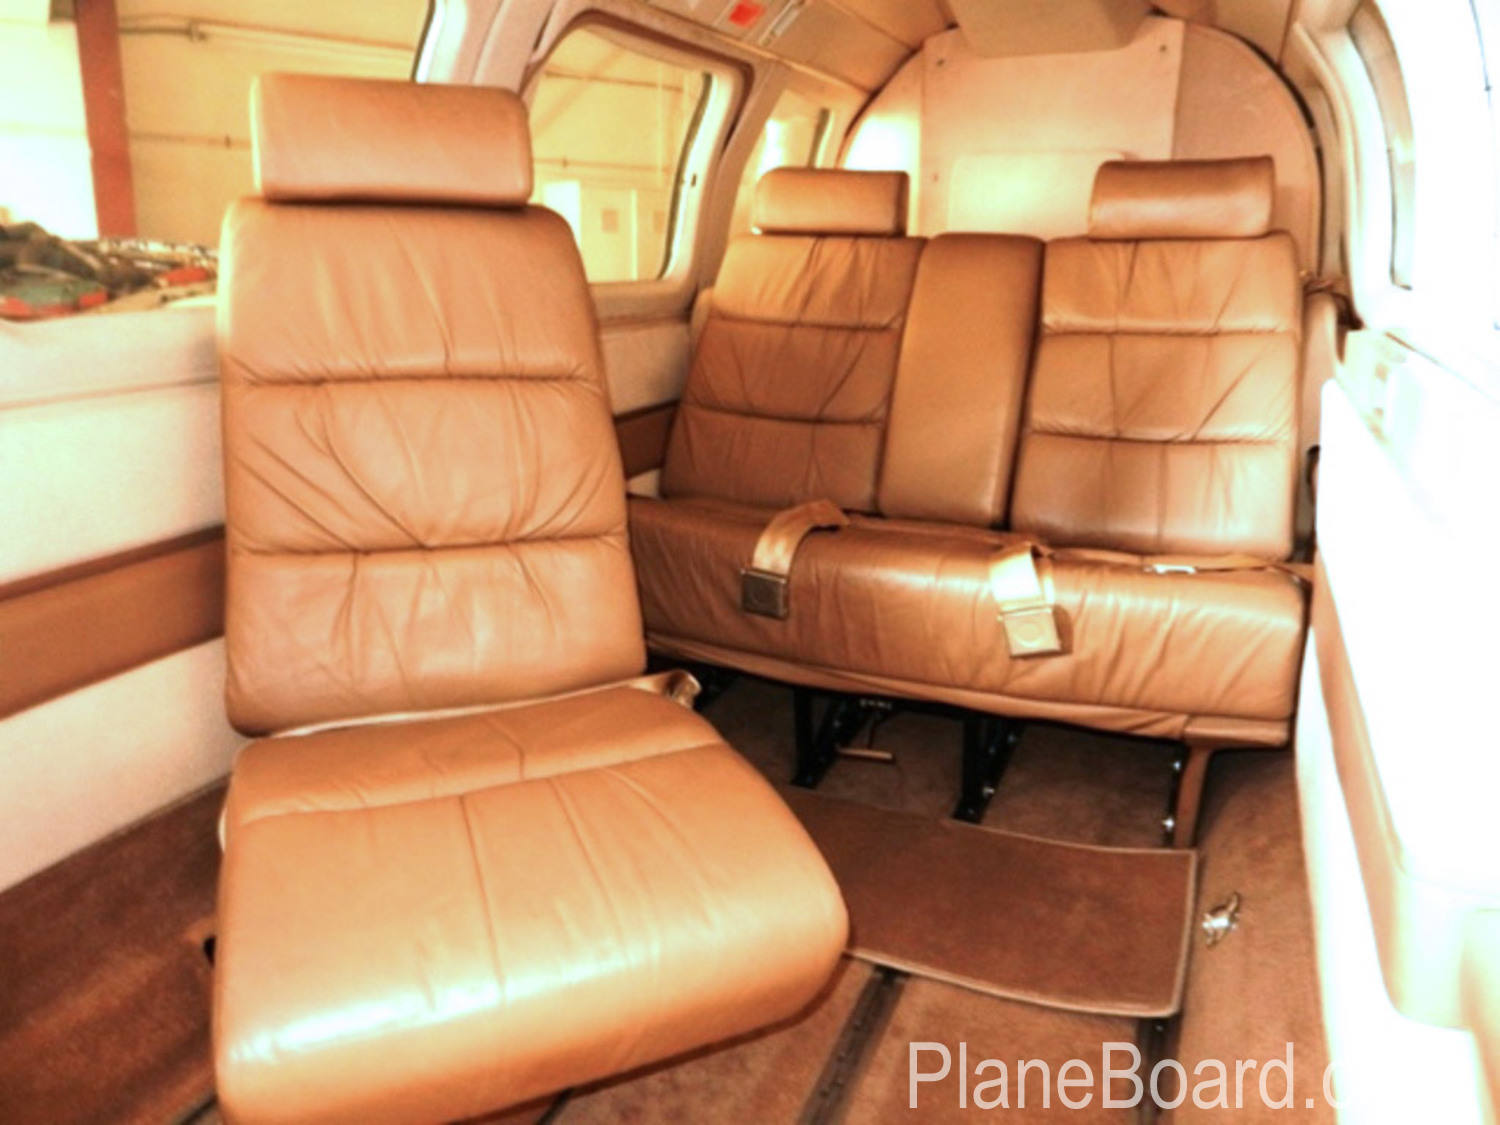 1979 Aerostar 700 Superstar interior 5